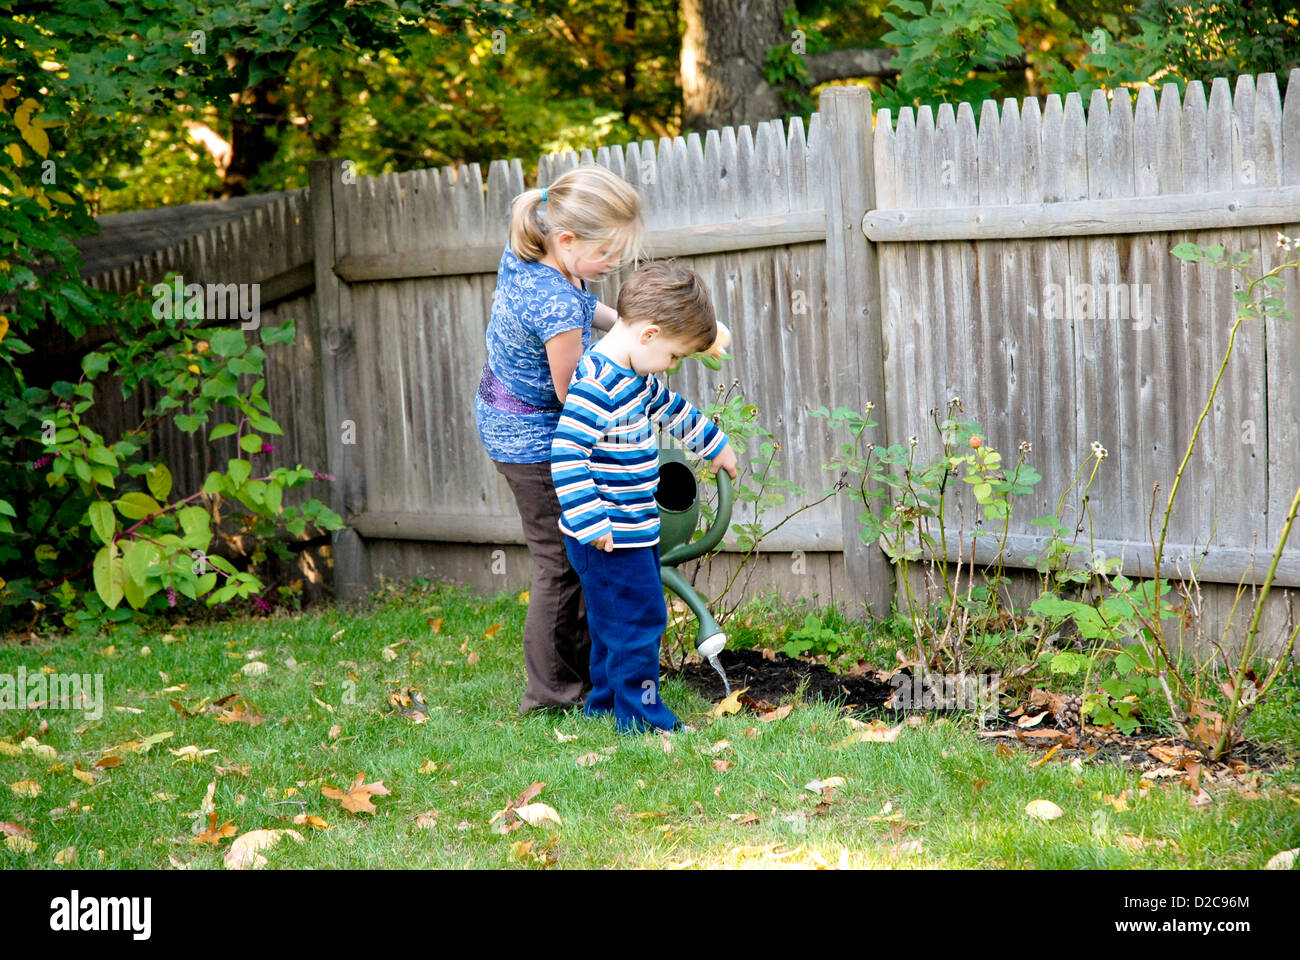 7-Year Old Girl And 2-Year Old Boy, Winchester, Massachusetts - Stock Image